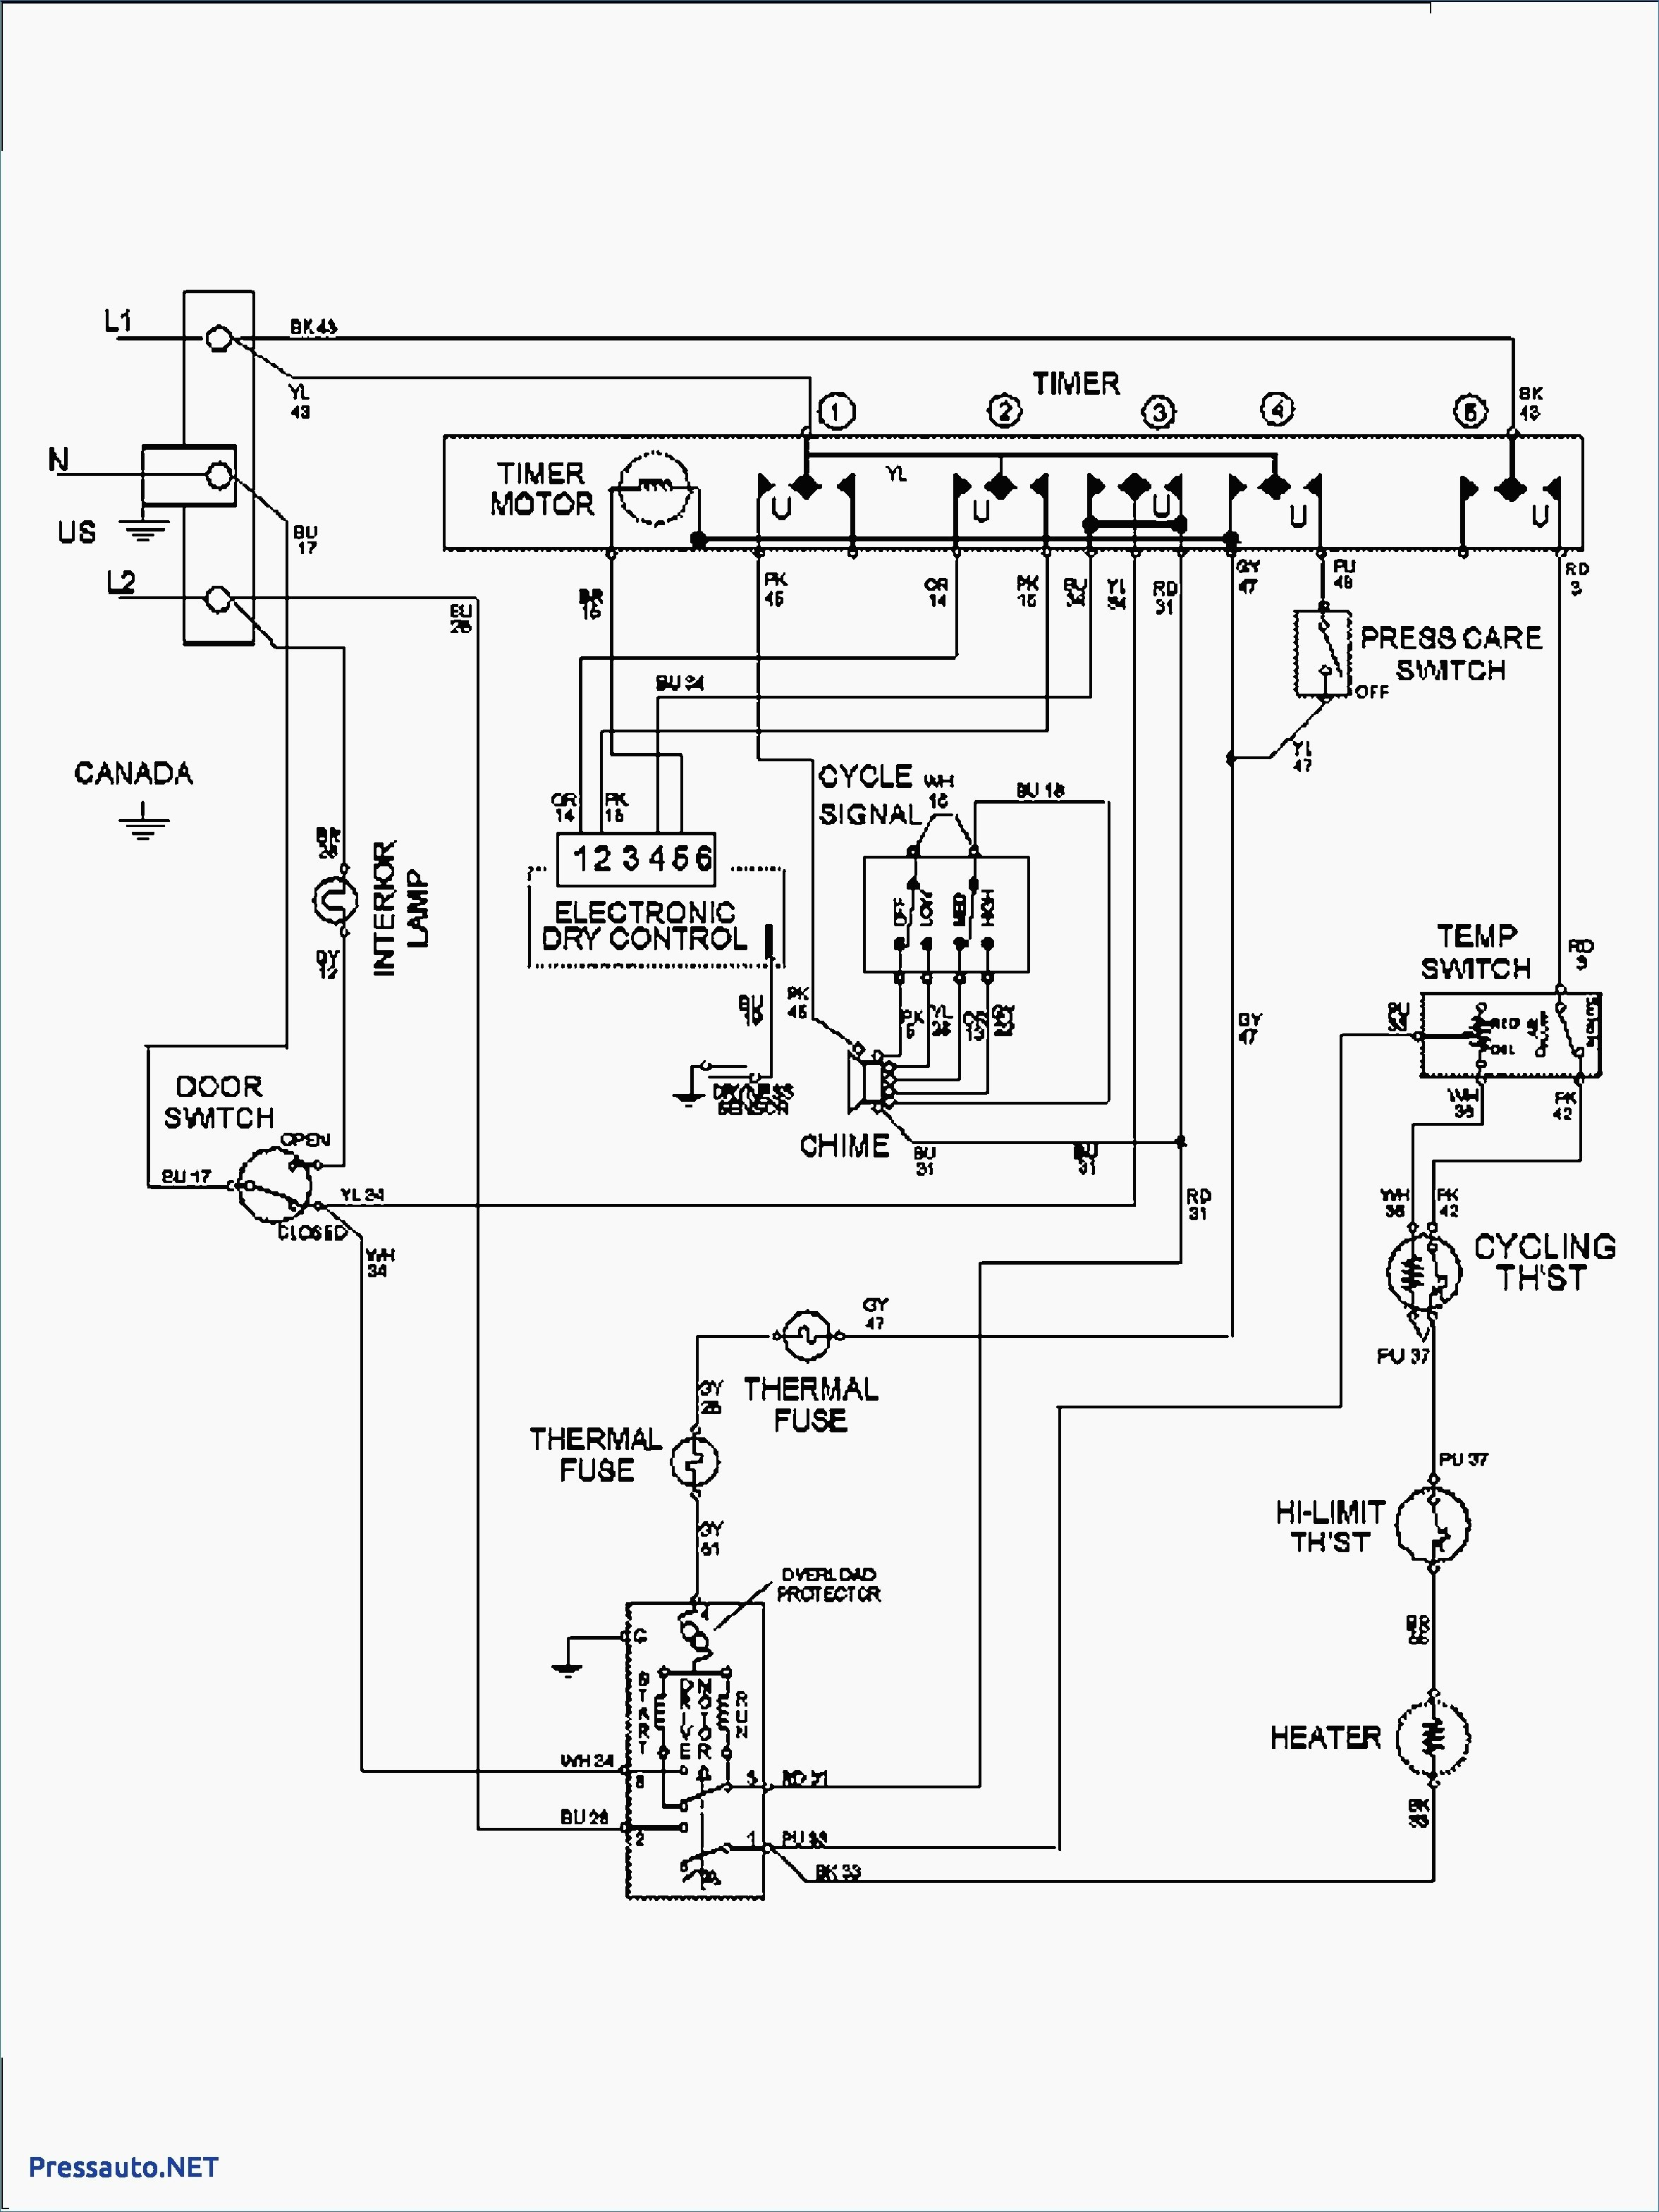 Gallery The Whirlpool Duet Dryer Heating Element Wiring Diagram